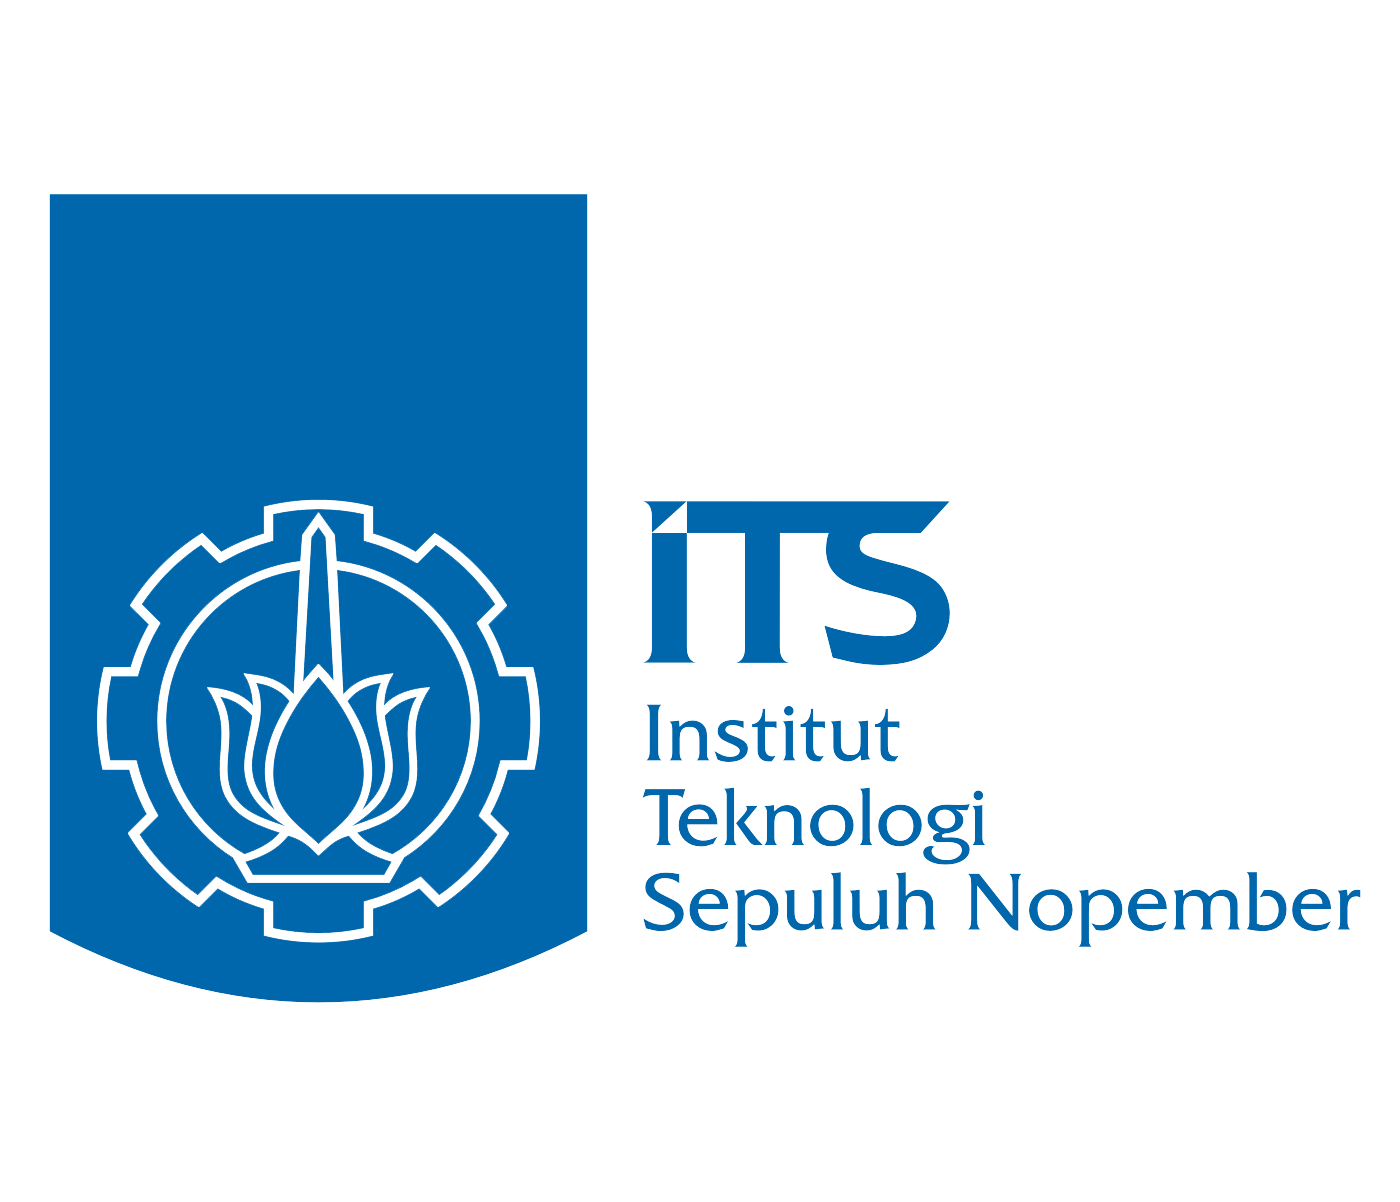 logo-its-biru-transparan